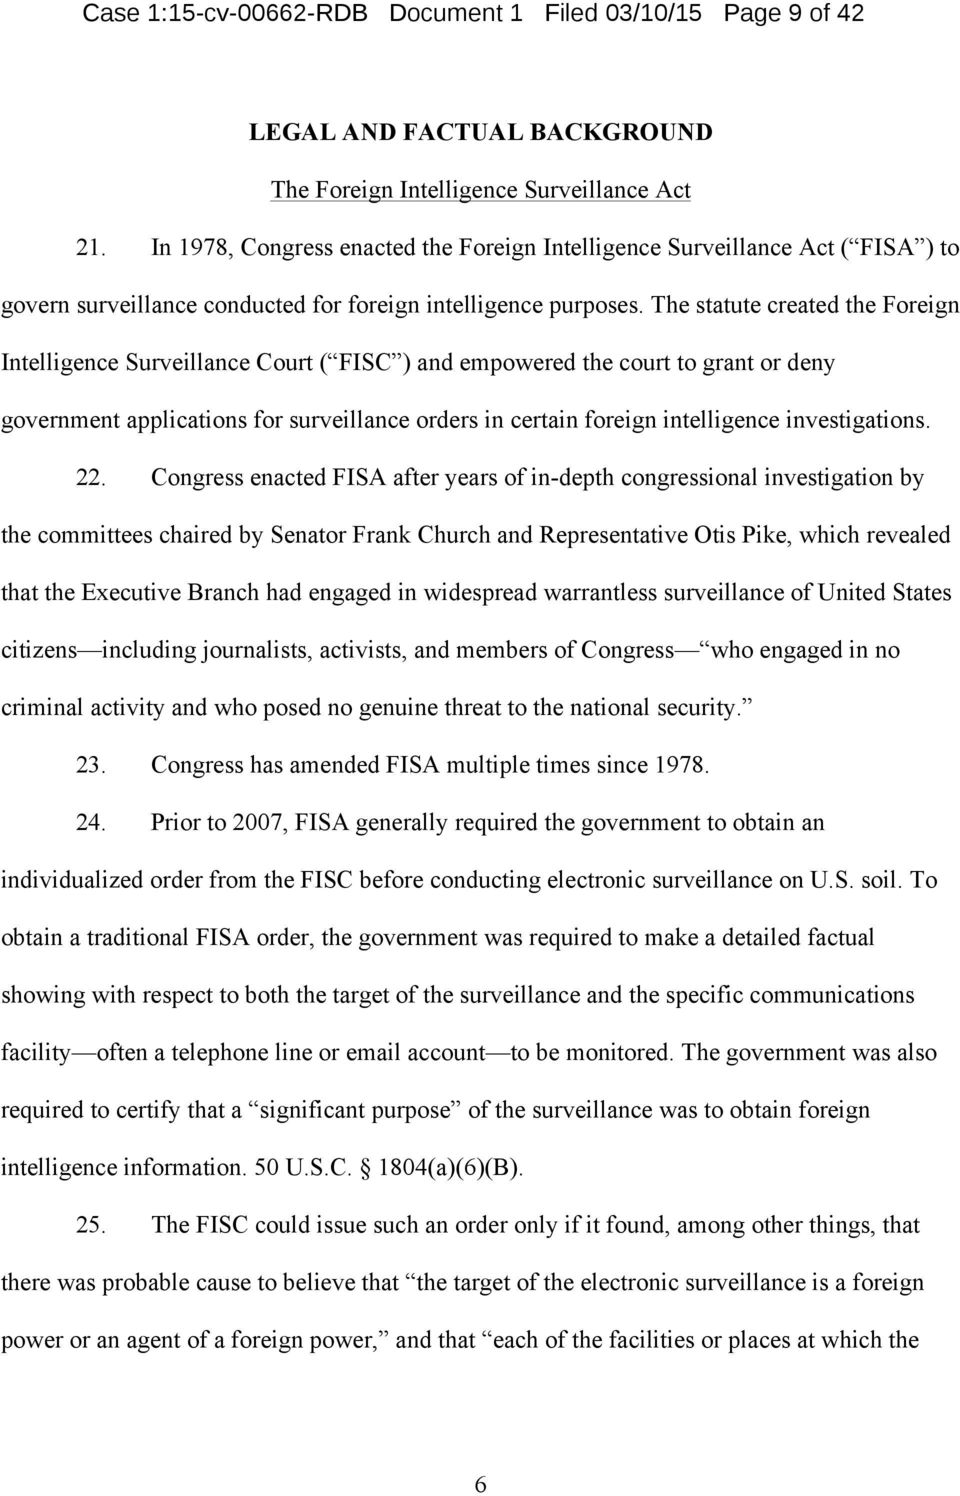 The statute created the Foreign Intelligence Surveillance Court ( FISC ) and empowered the court to grant or deny government applications for surveillance orders in certain foreign intelligence